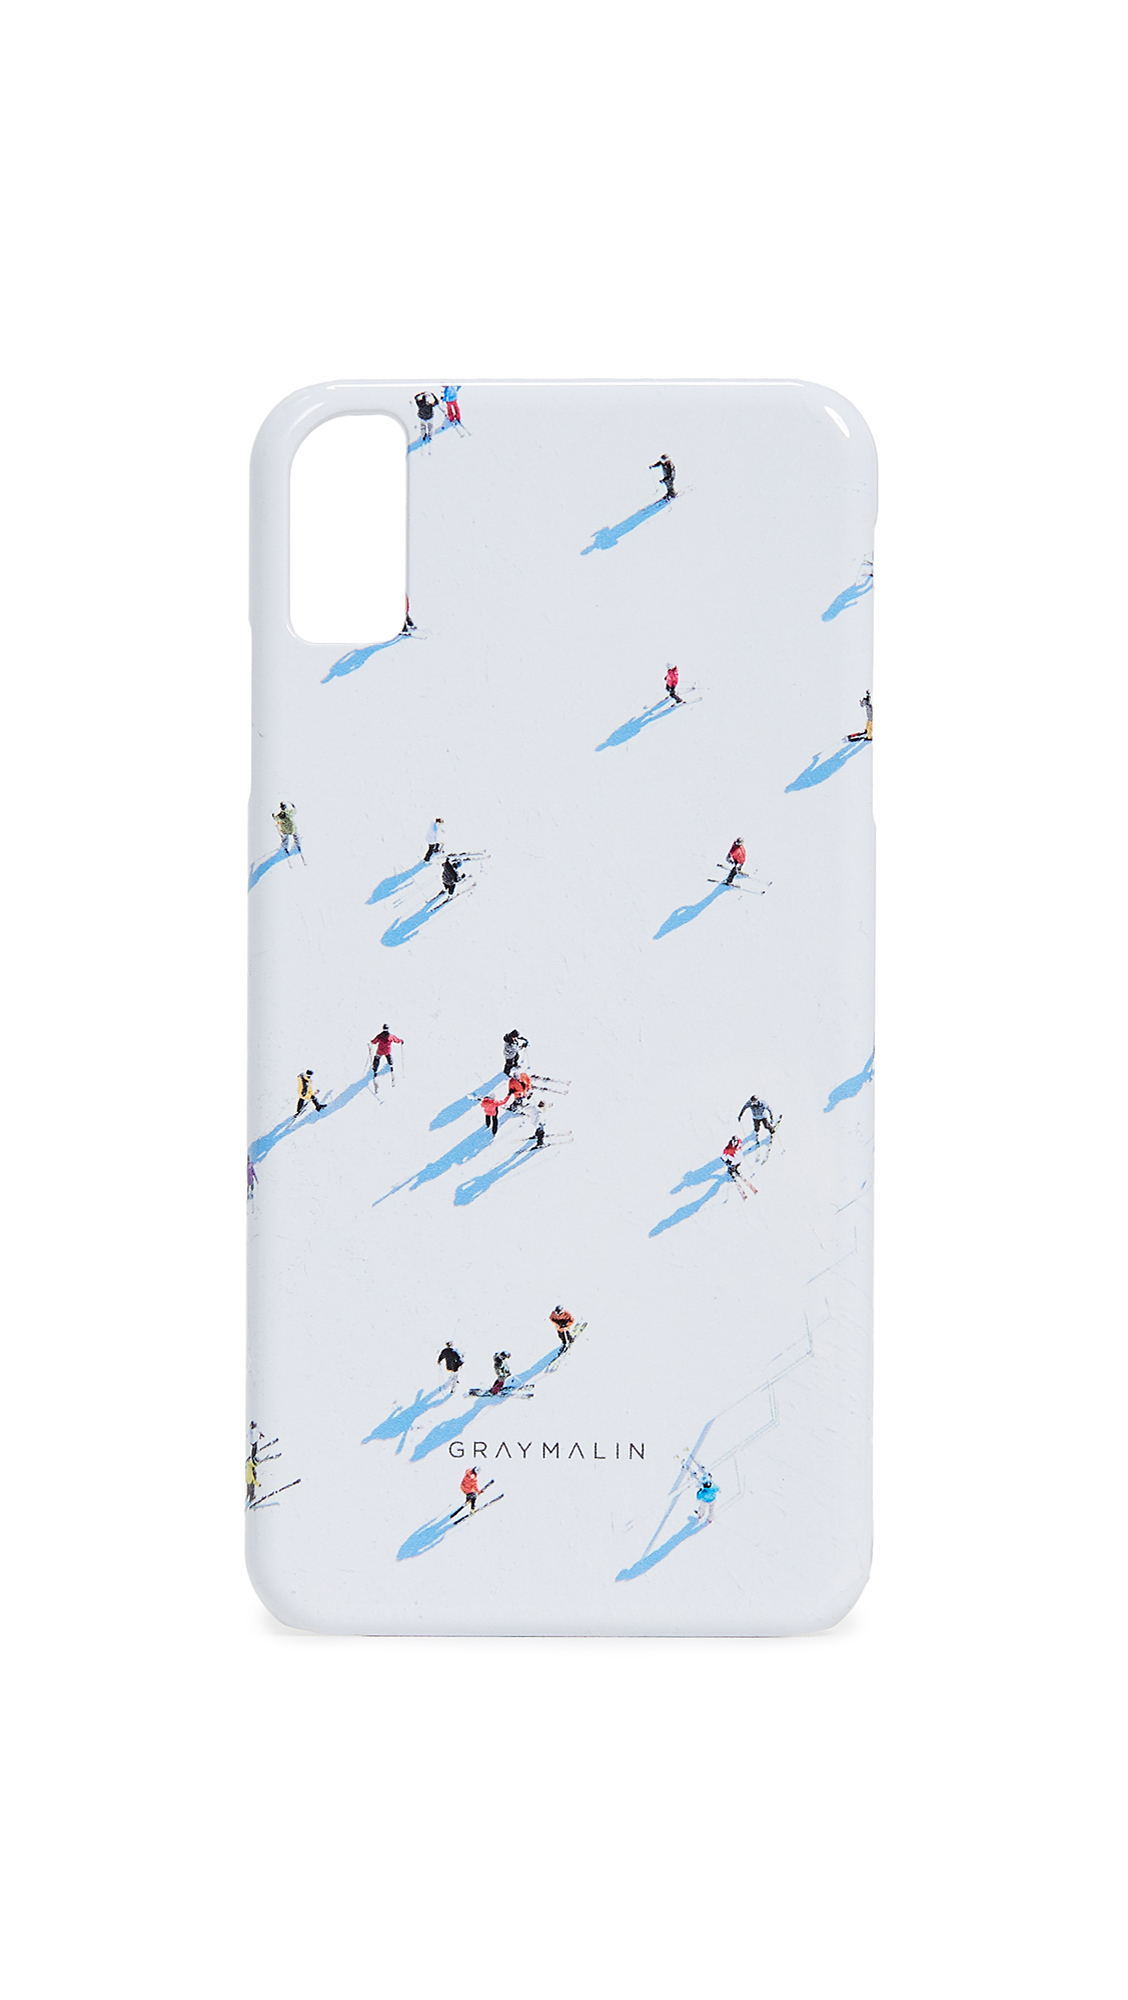 GRAY MALIN The Deer Valley Skiers Iphone Xs Max Case in Multi